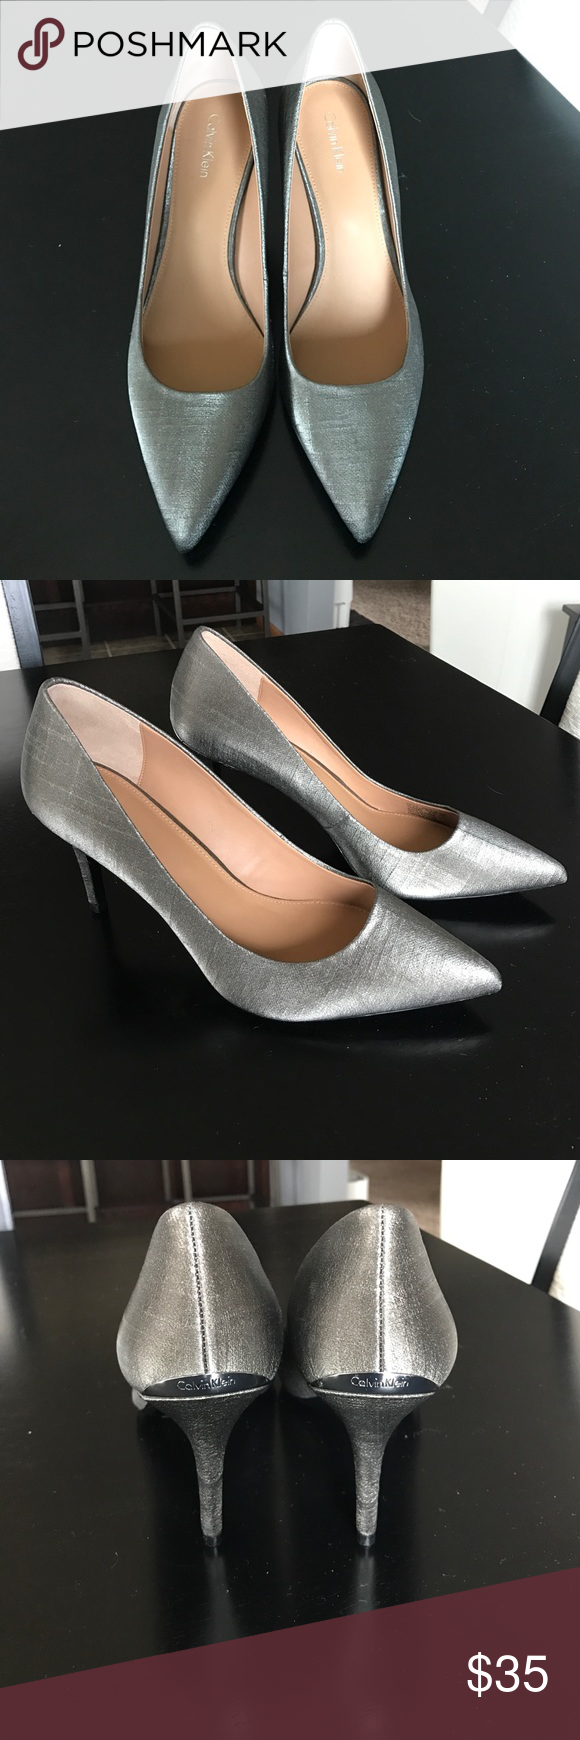 390051717004 Calvin Klein Gayle metallic pump Metallic silver pump. Like new condition!  Just over 3